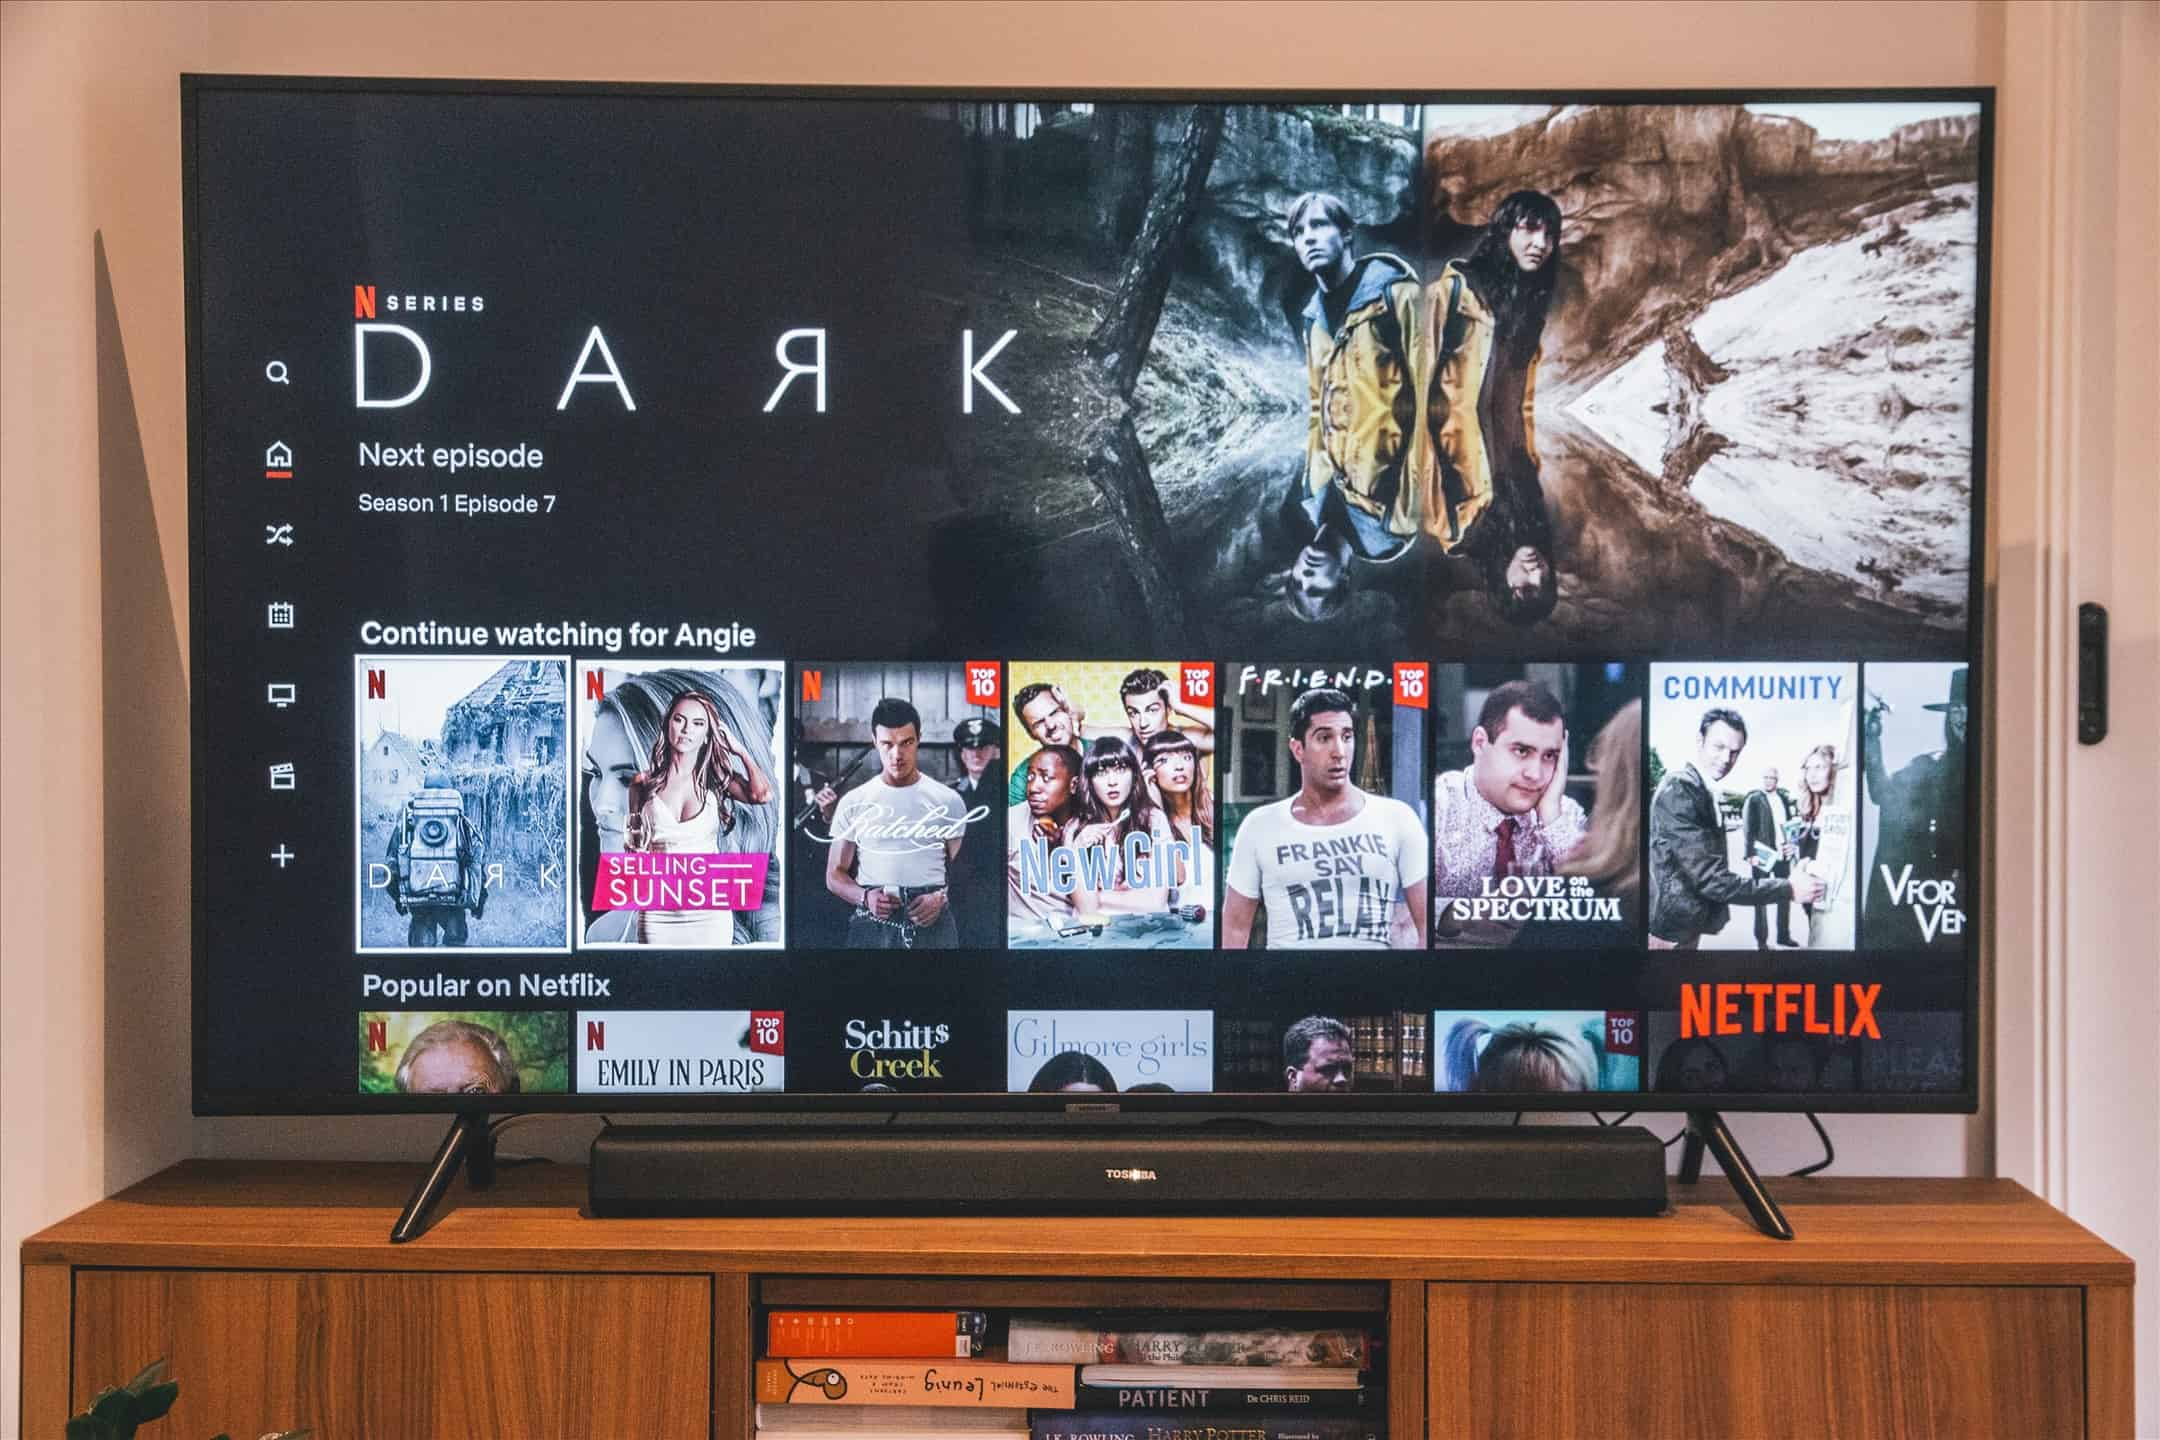 How to block shows on Netflix